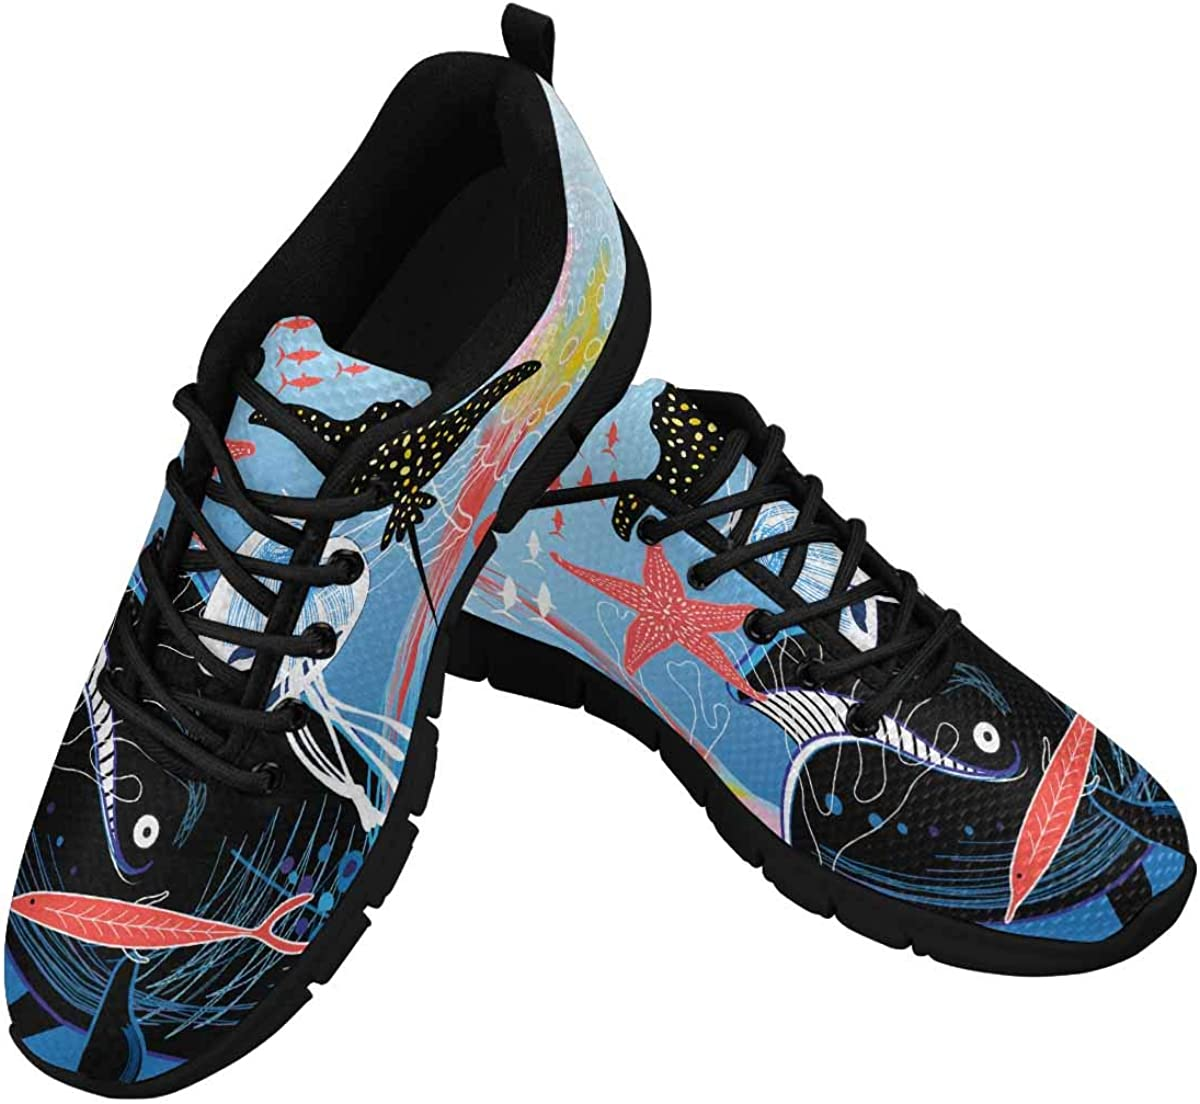 INTERESTPRINT Marine Background Women's Lightweight Athletic Casual Gym Sneakers